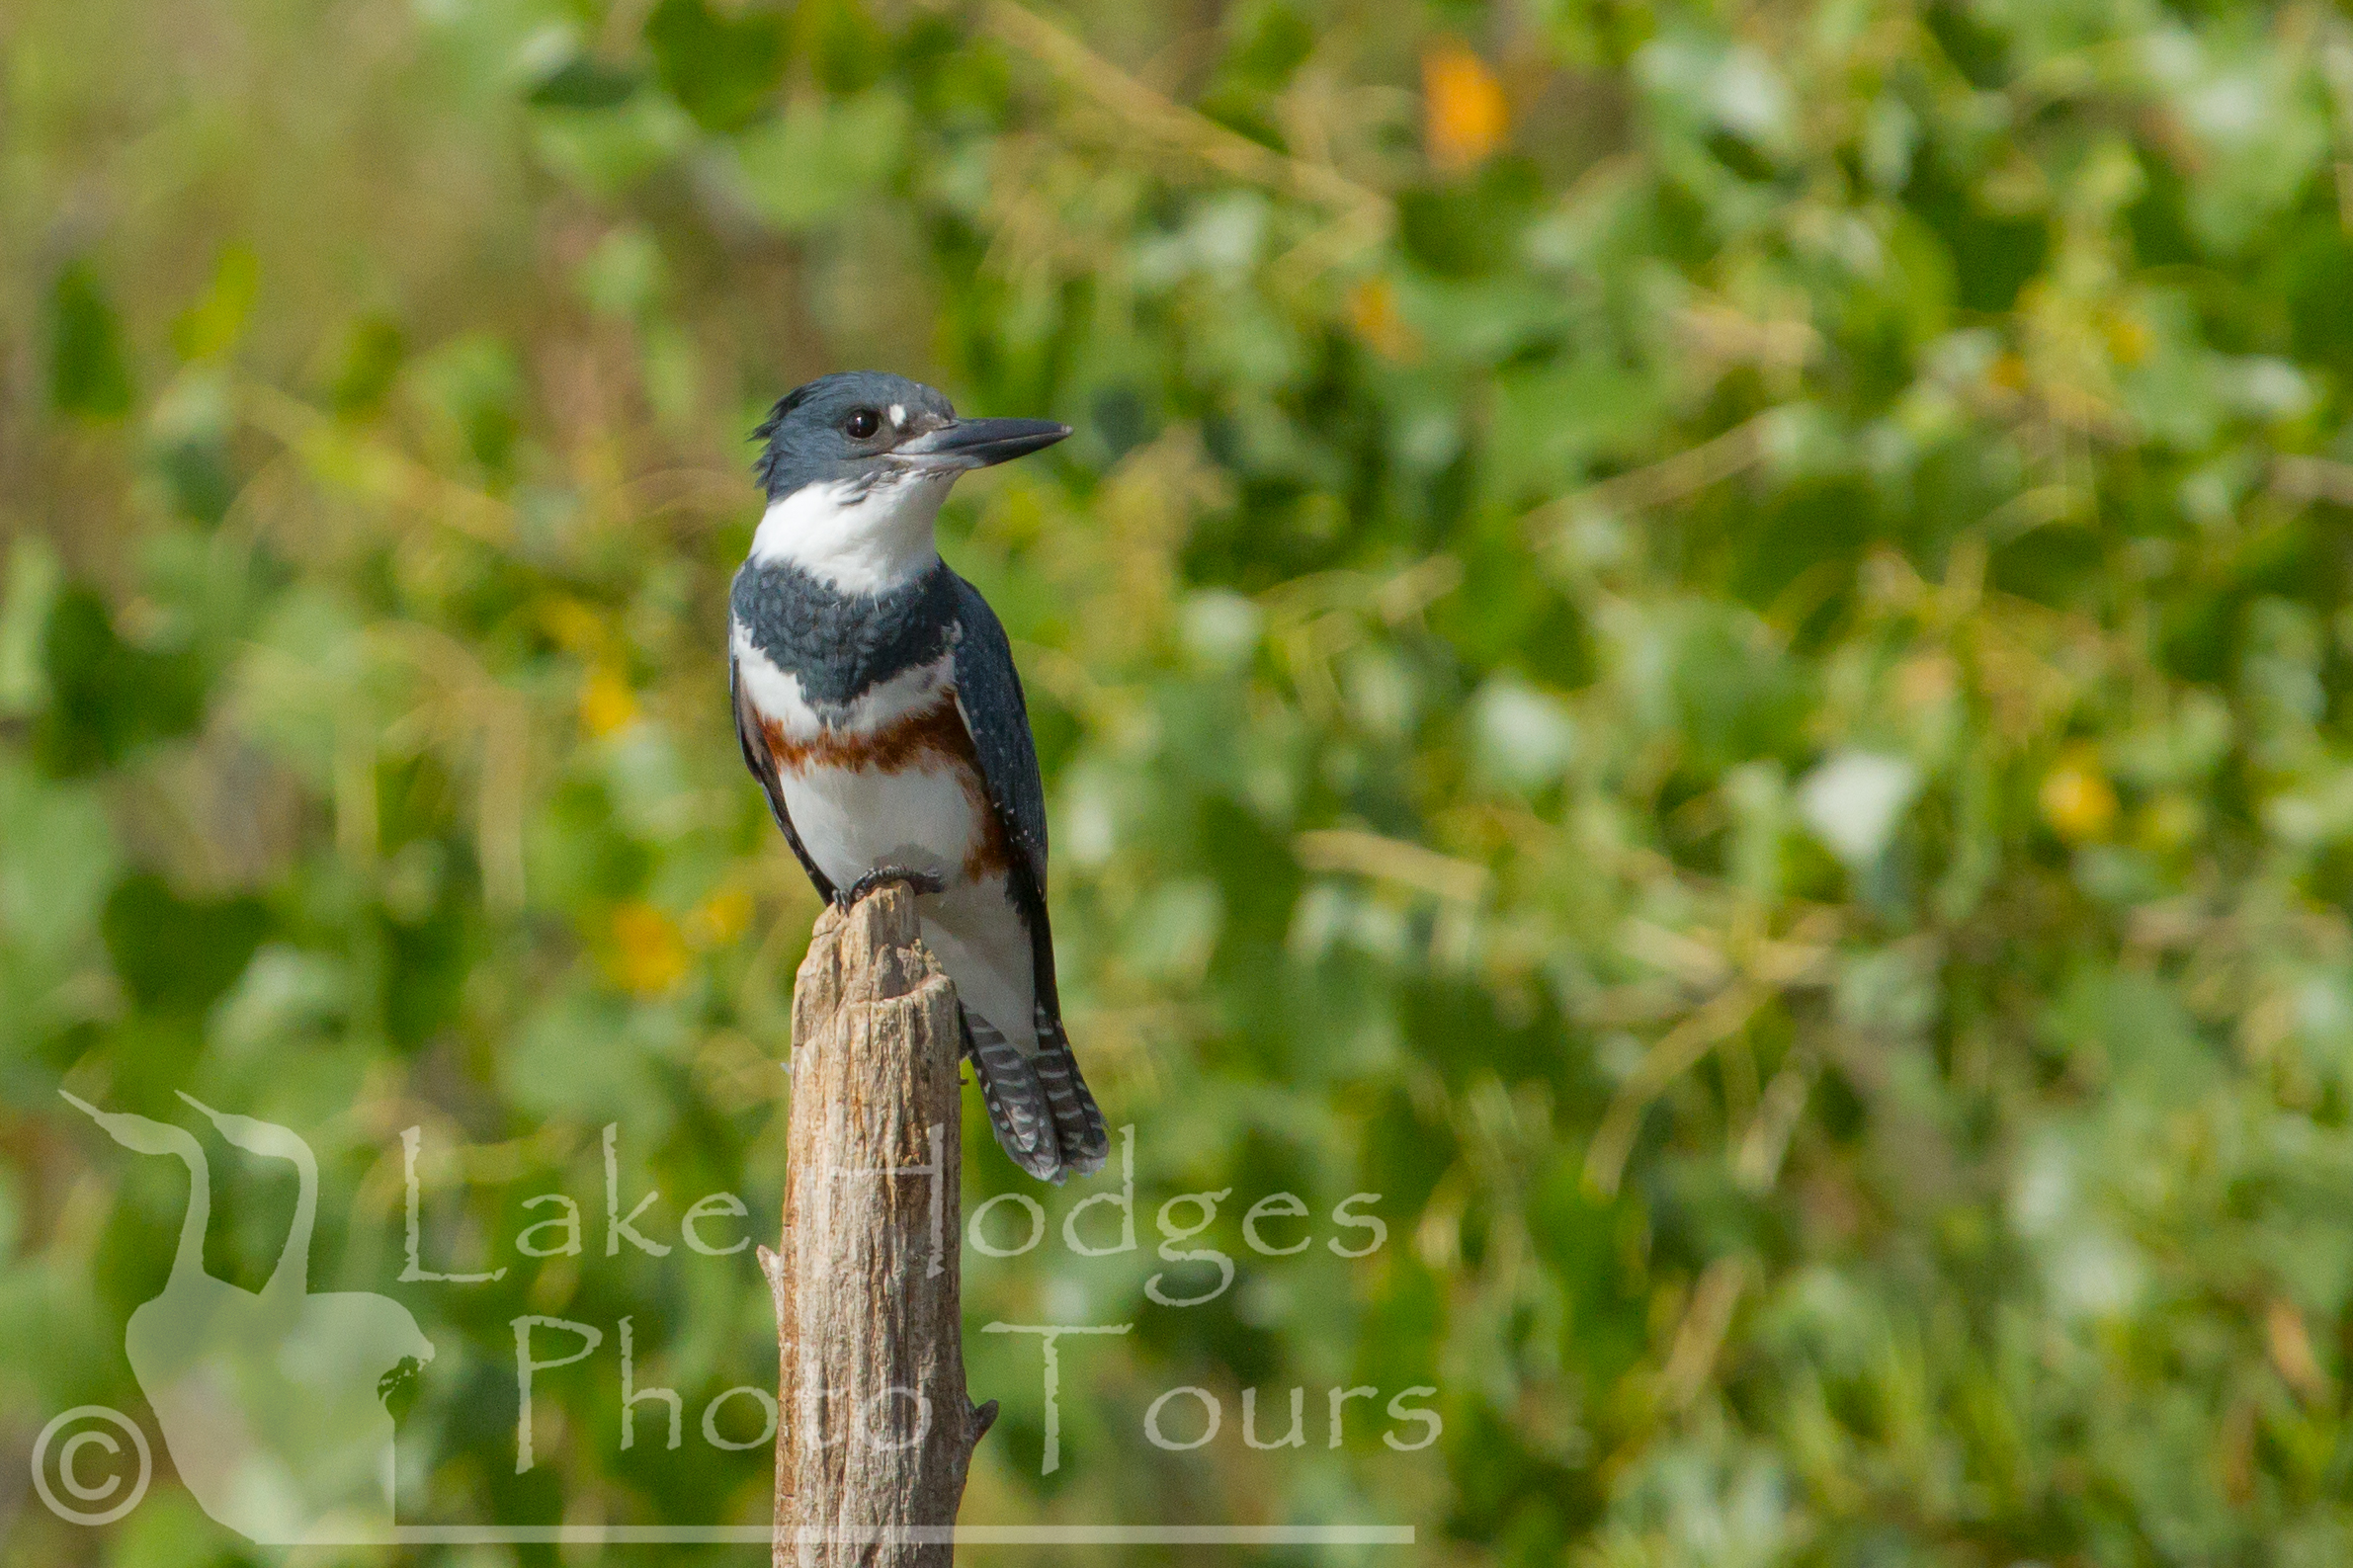 Belted Kingfisher, female at Lake Hodges Photo Tours, CA, USA